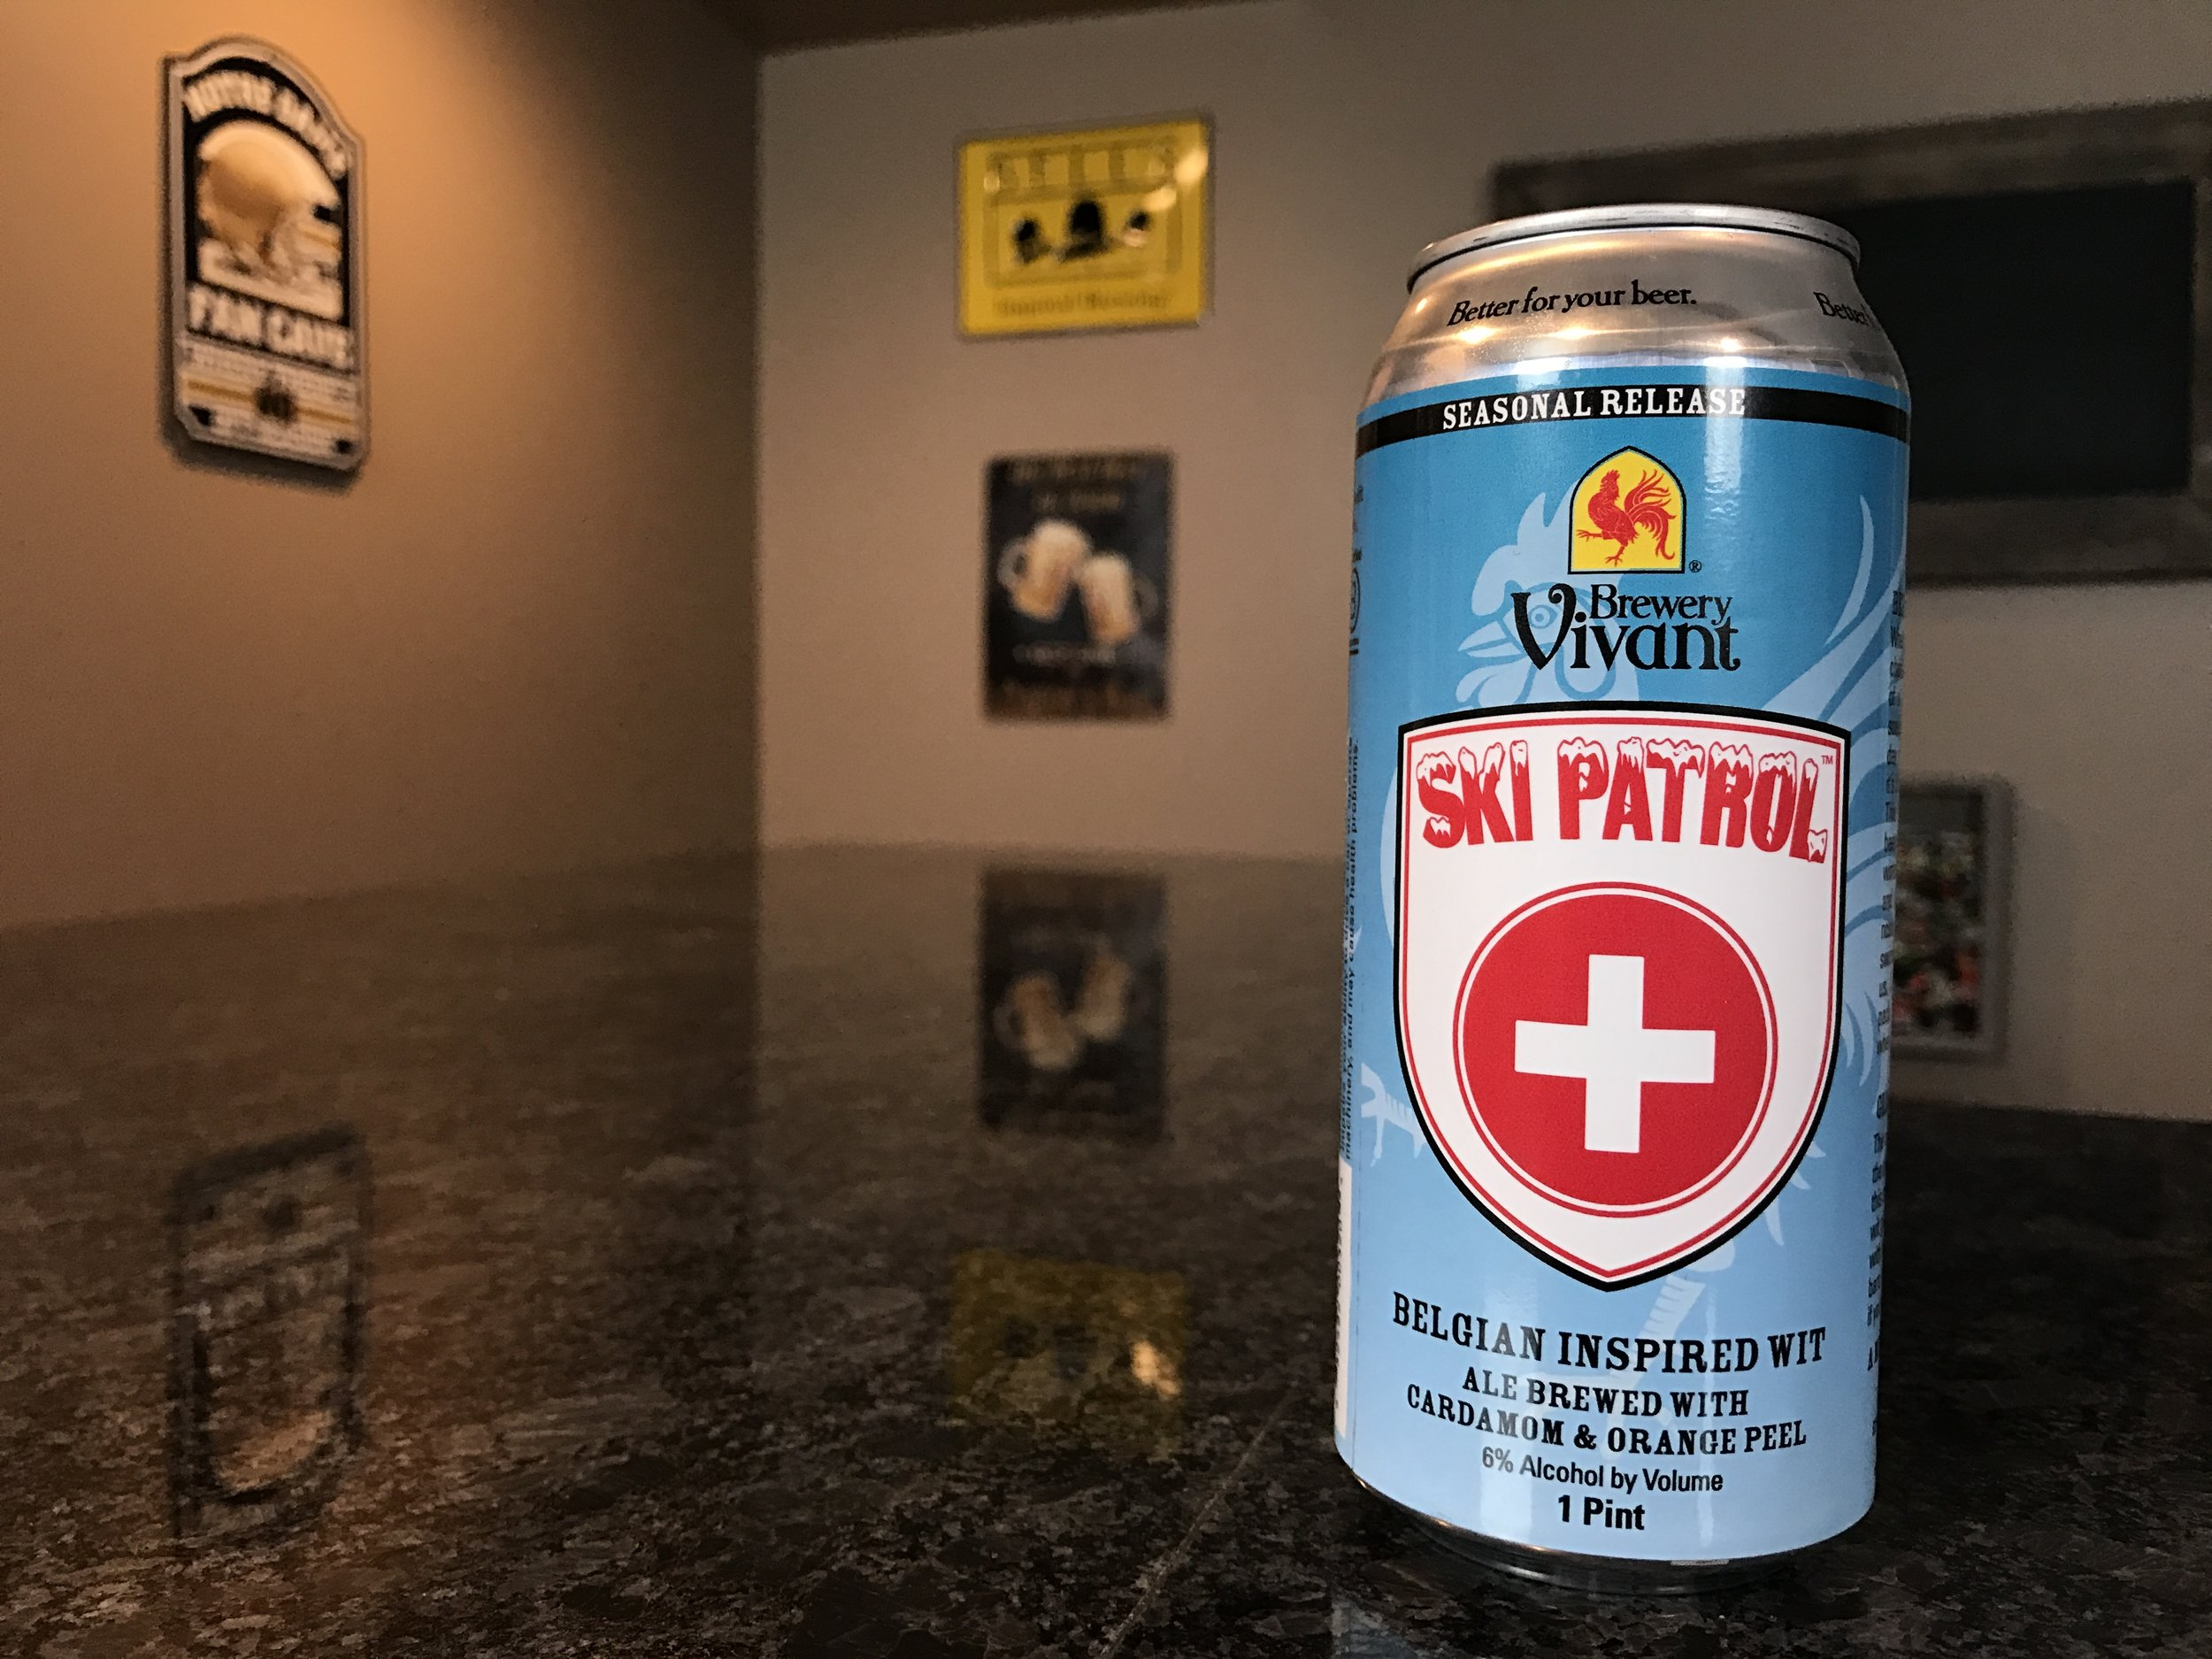 SKI PATROL 6% - Want to see the Video review? Click on the image.